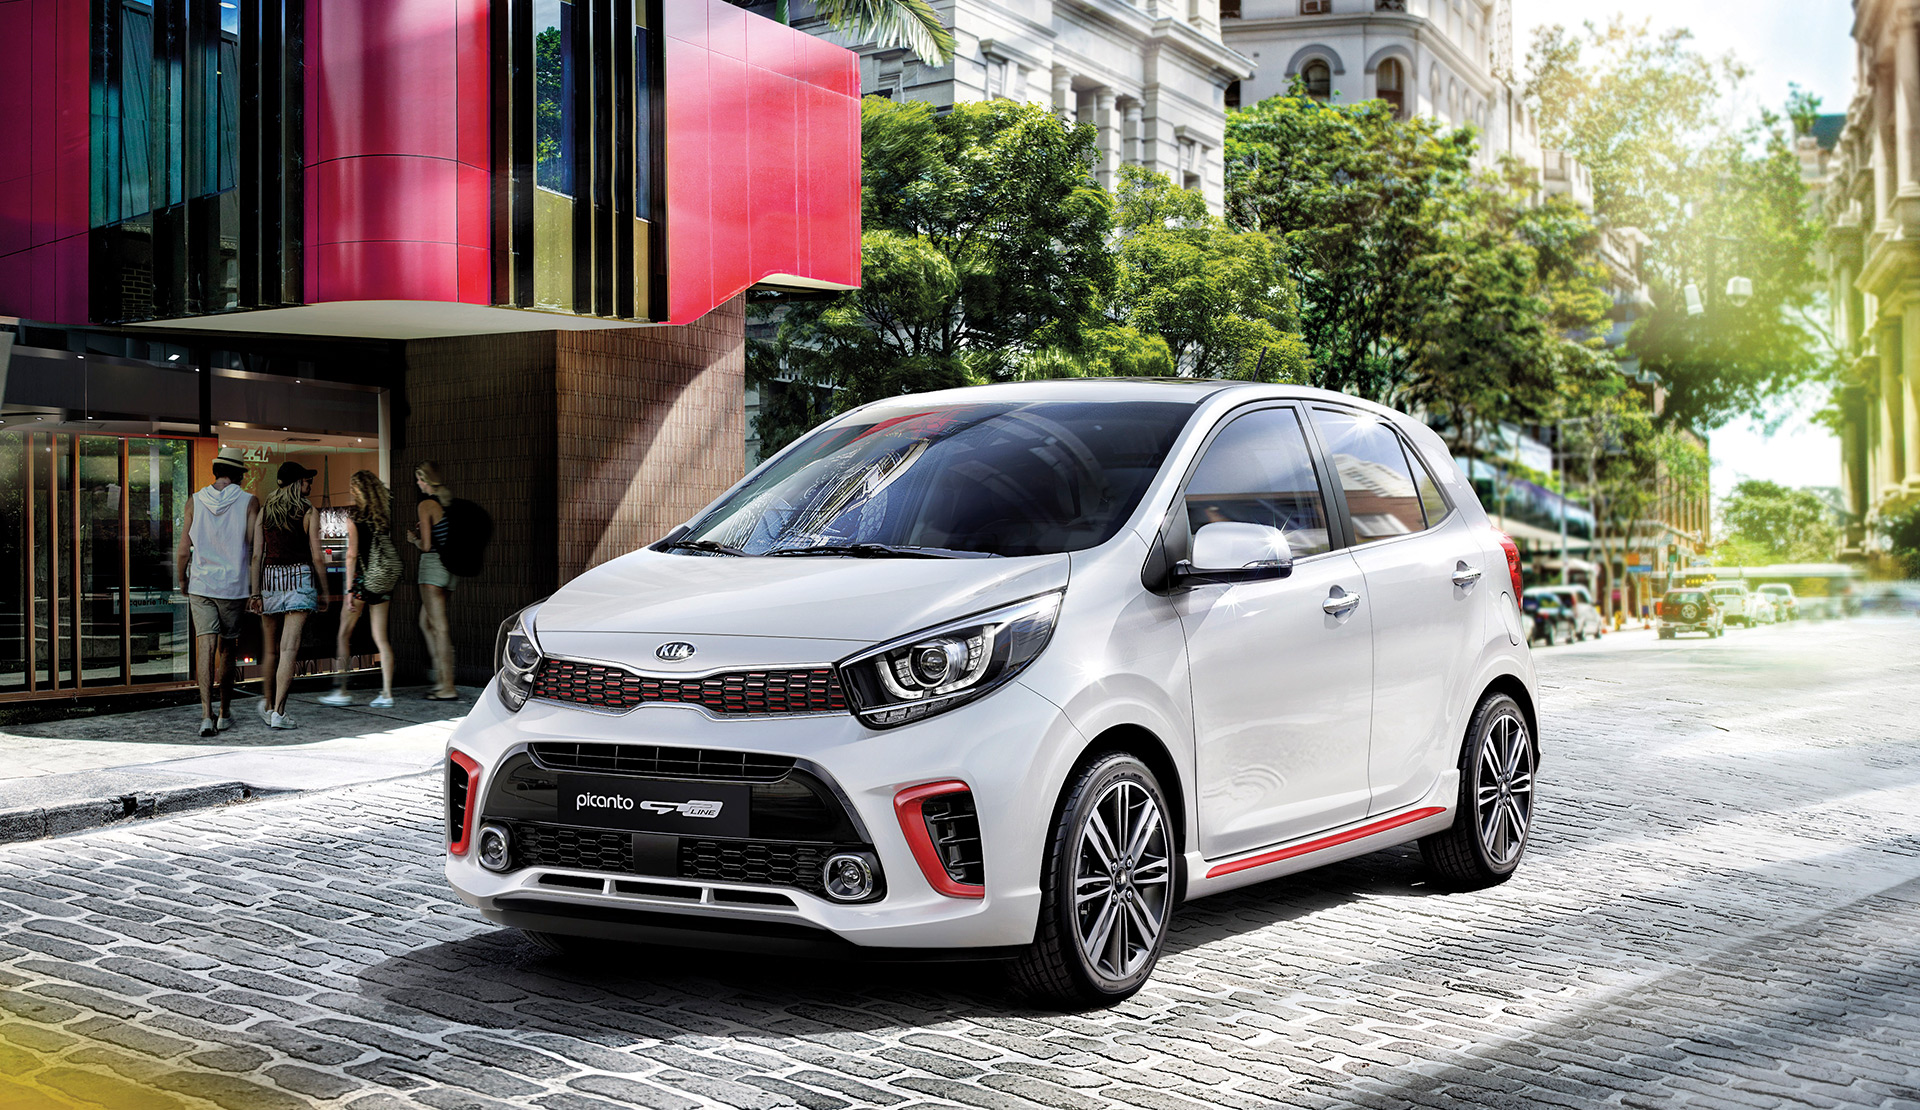 all-new-picanto-my18_Style_Main_Large_Desktop_1920x1200.jpg